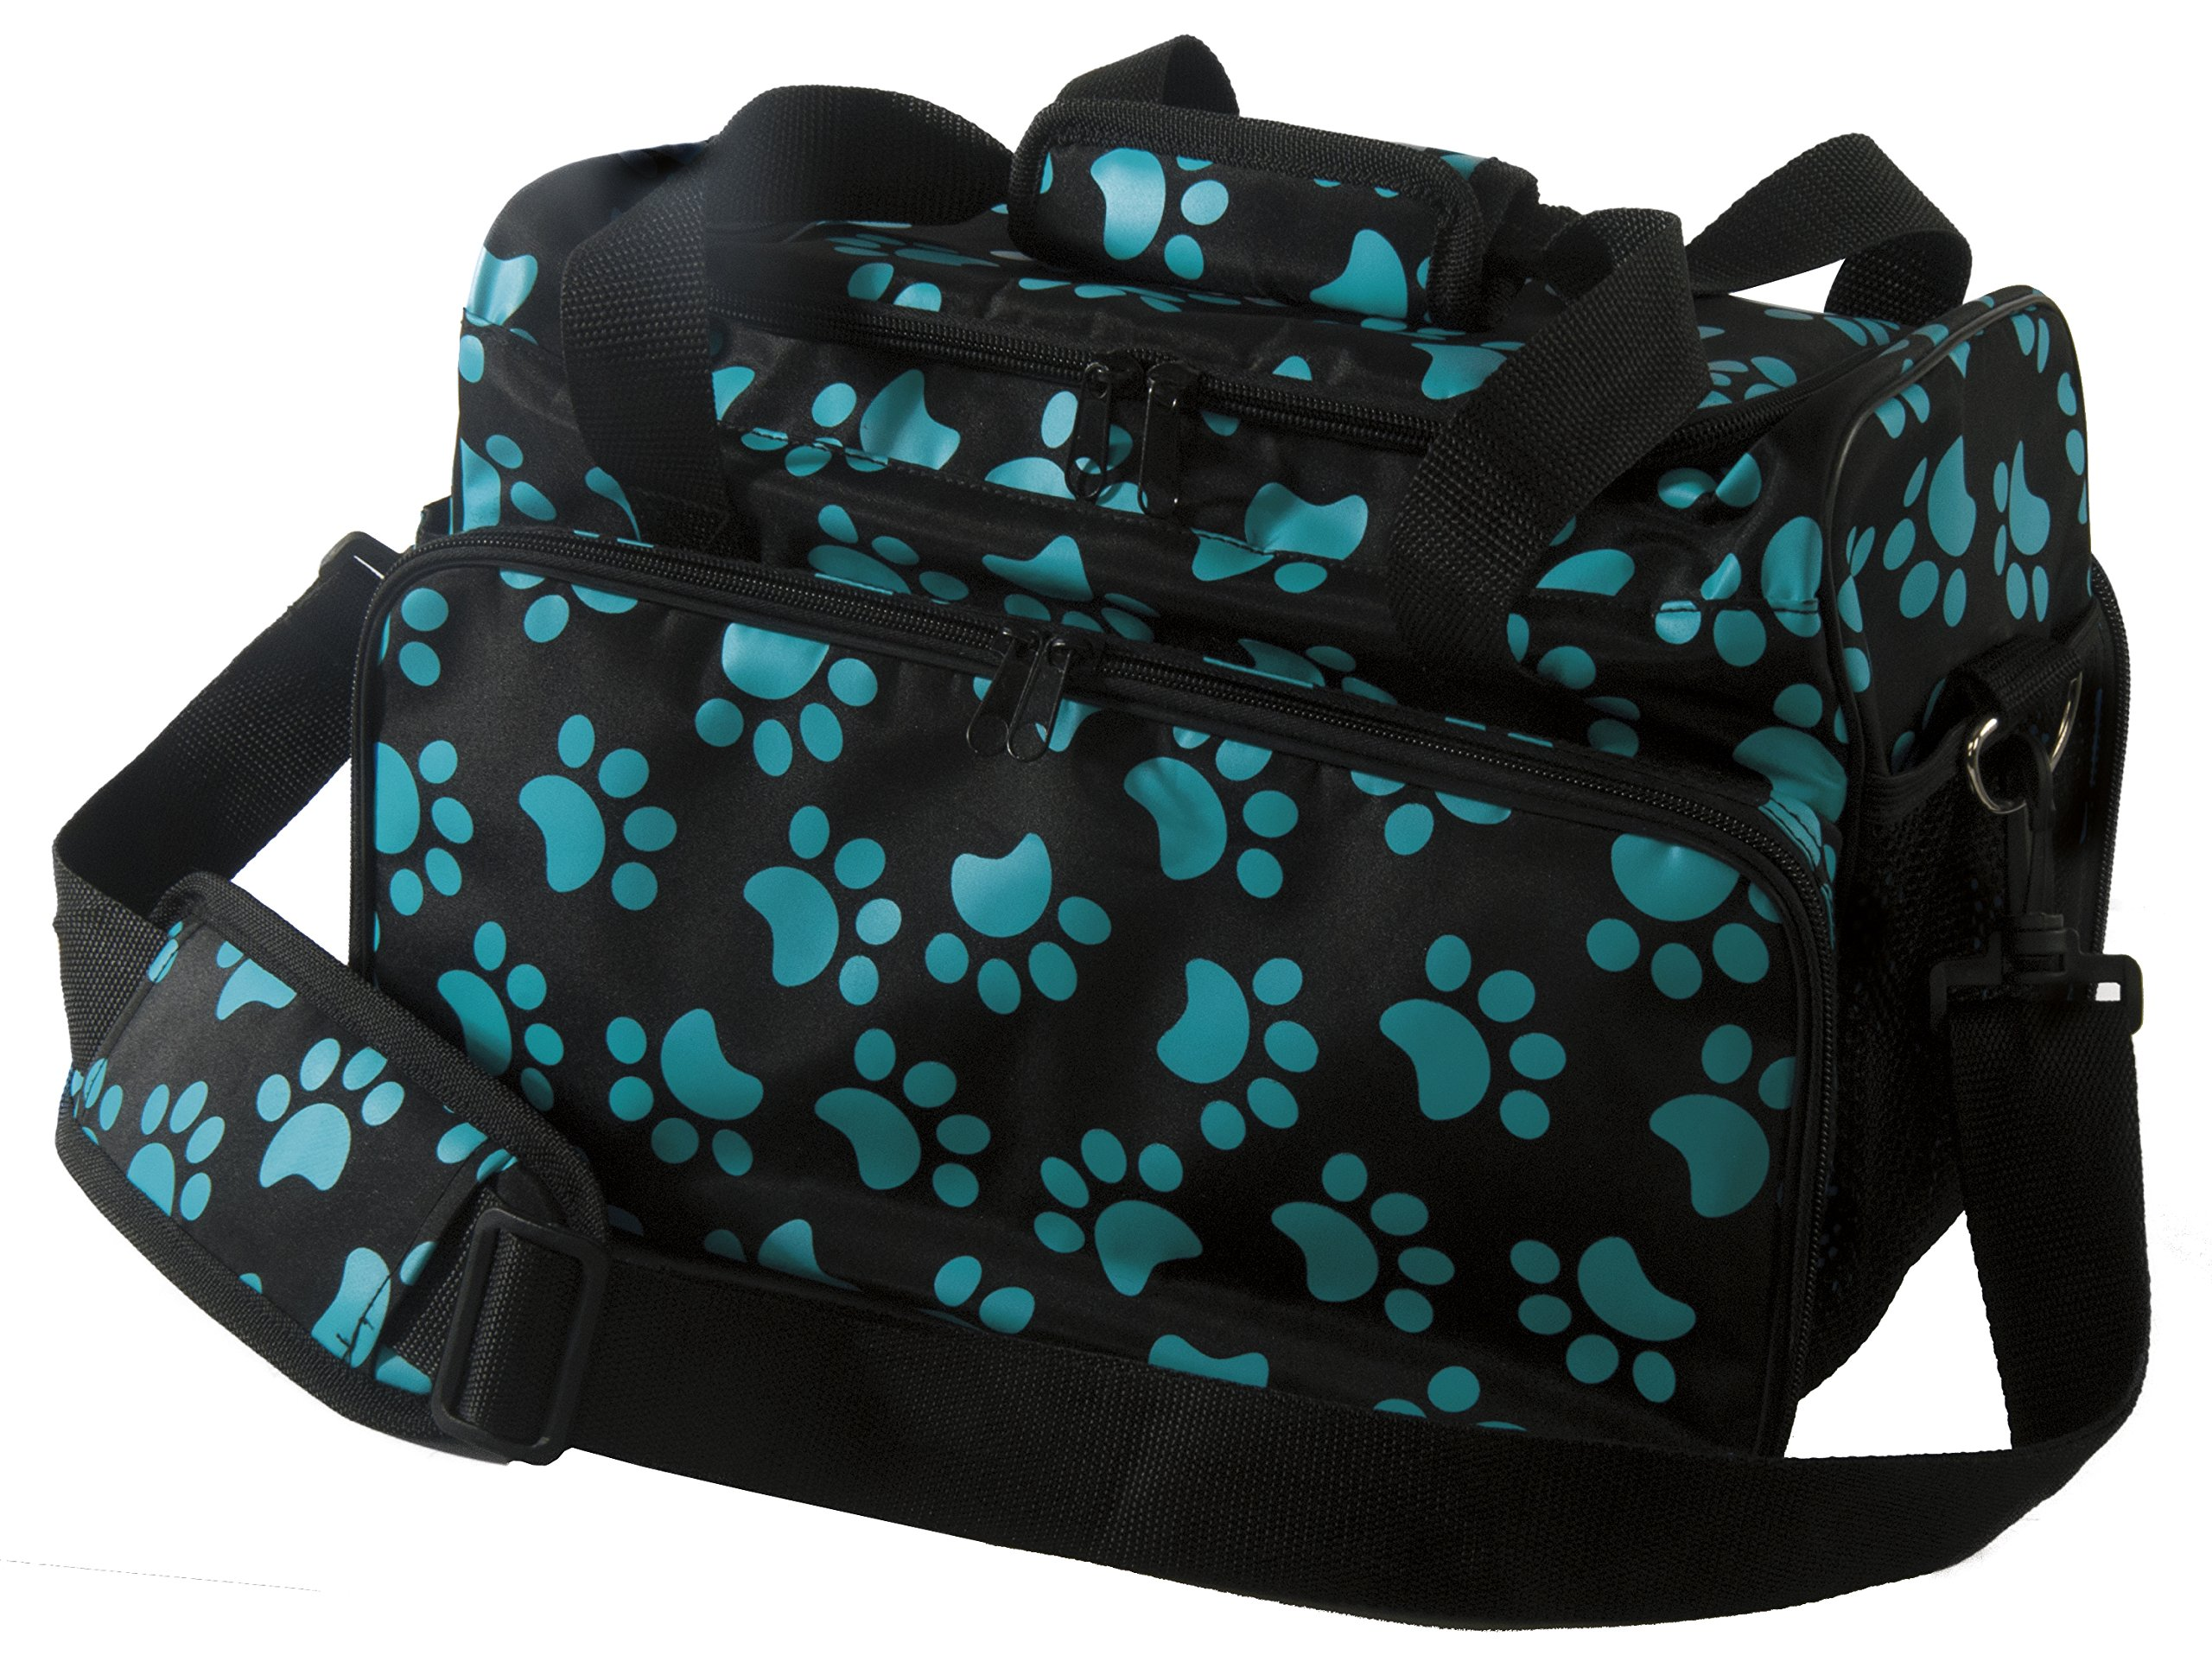 Wahl Professional Animal Travel Tote Bag with Zipper, Turquoise Paw Print Design (#97764-300) by Wahl Professional Animal